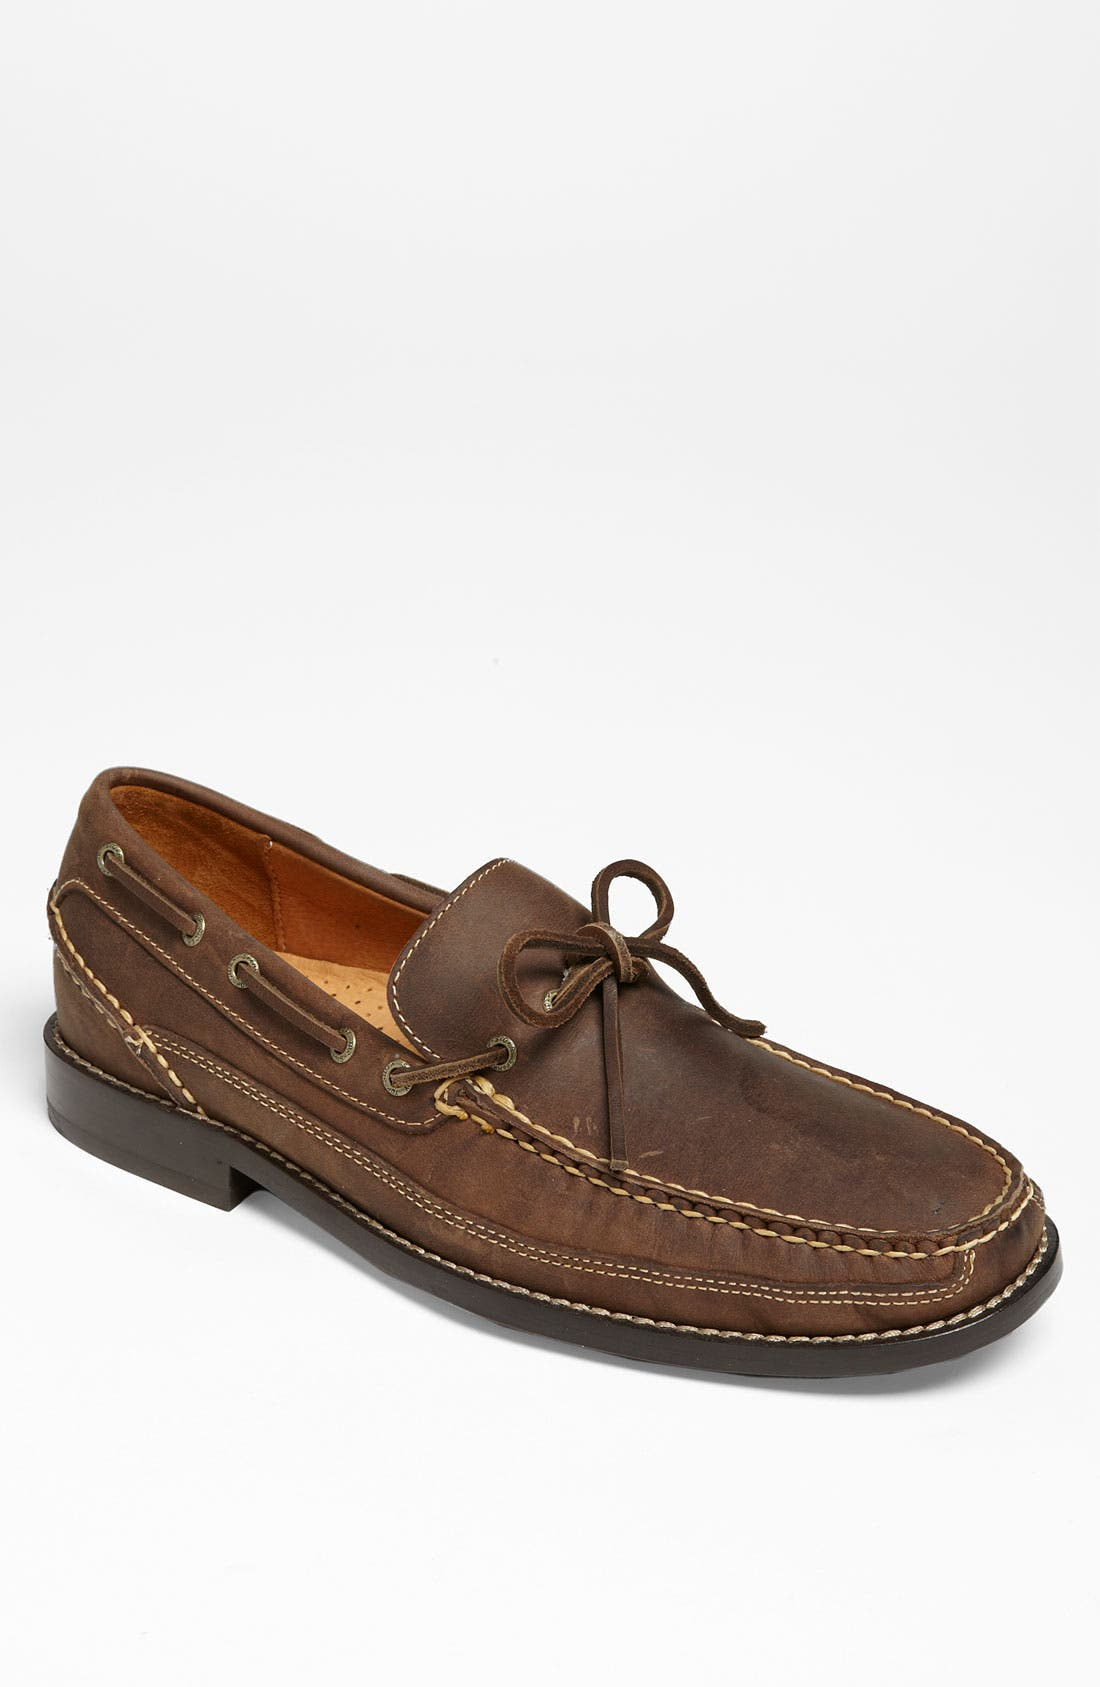 Alternate Image 1 Selected - Sperry Top-Sider® 'Gold Cup Camp' Moccasin